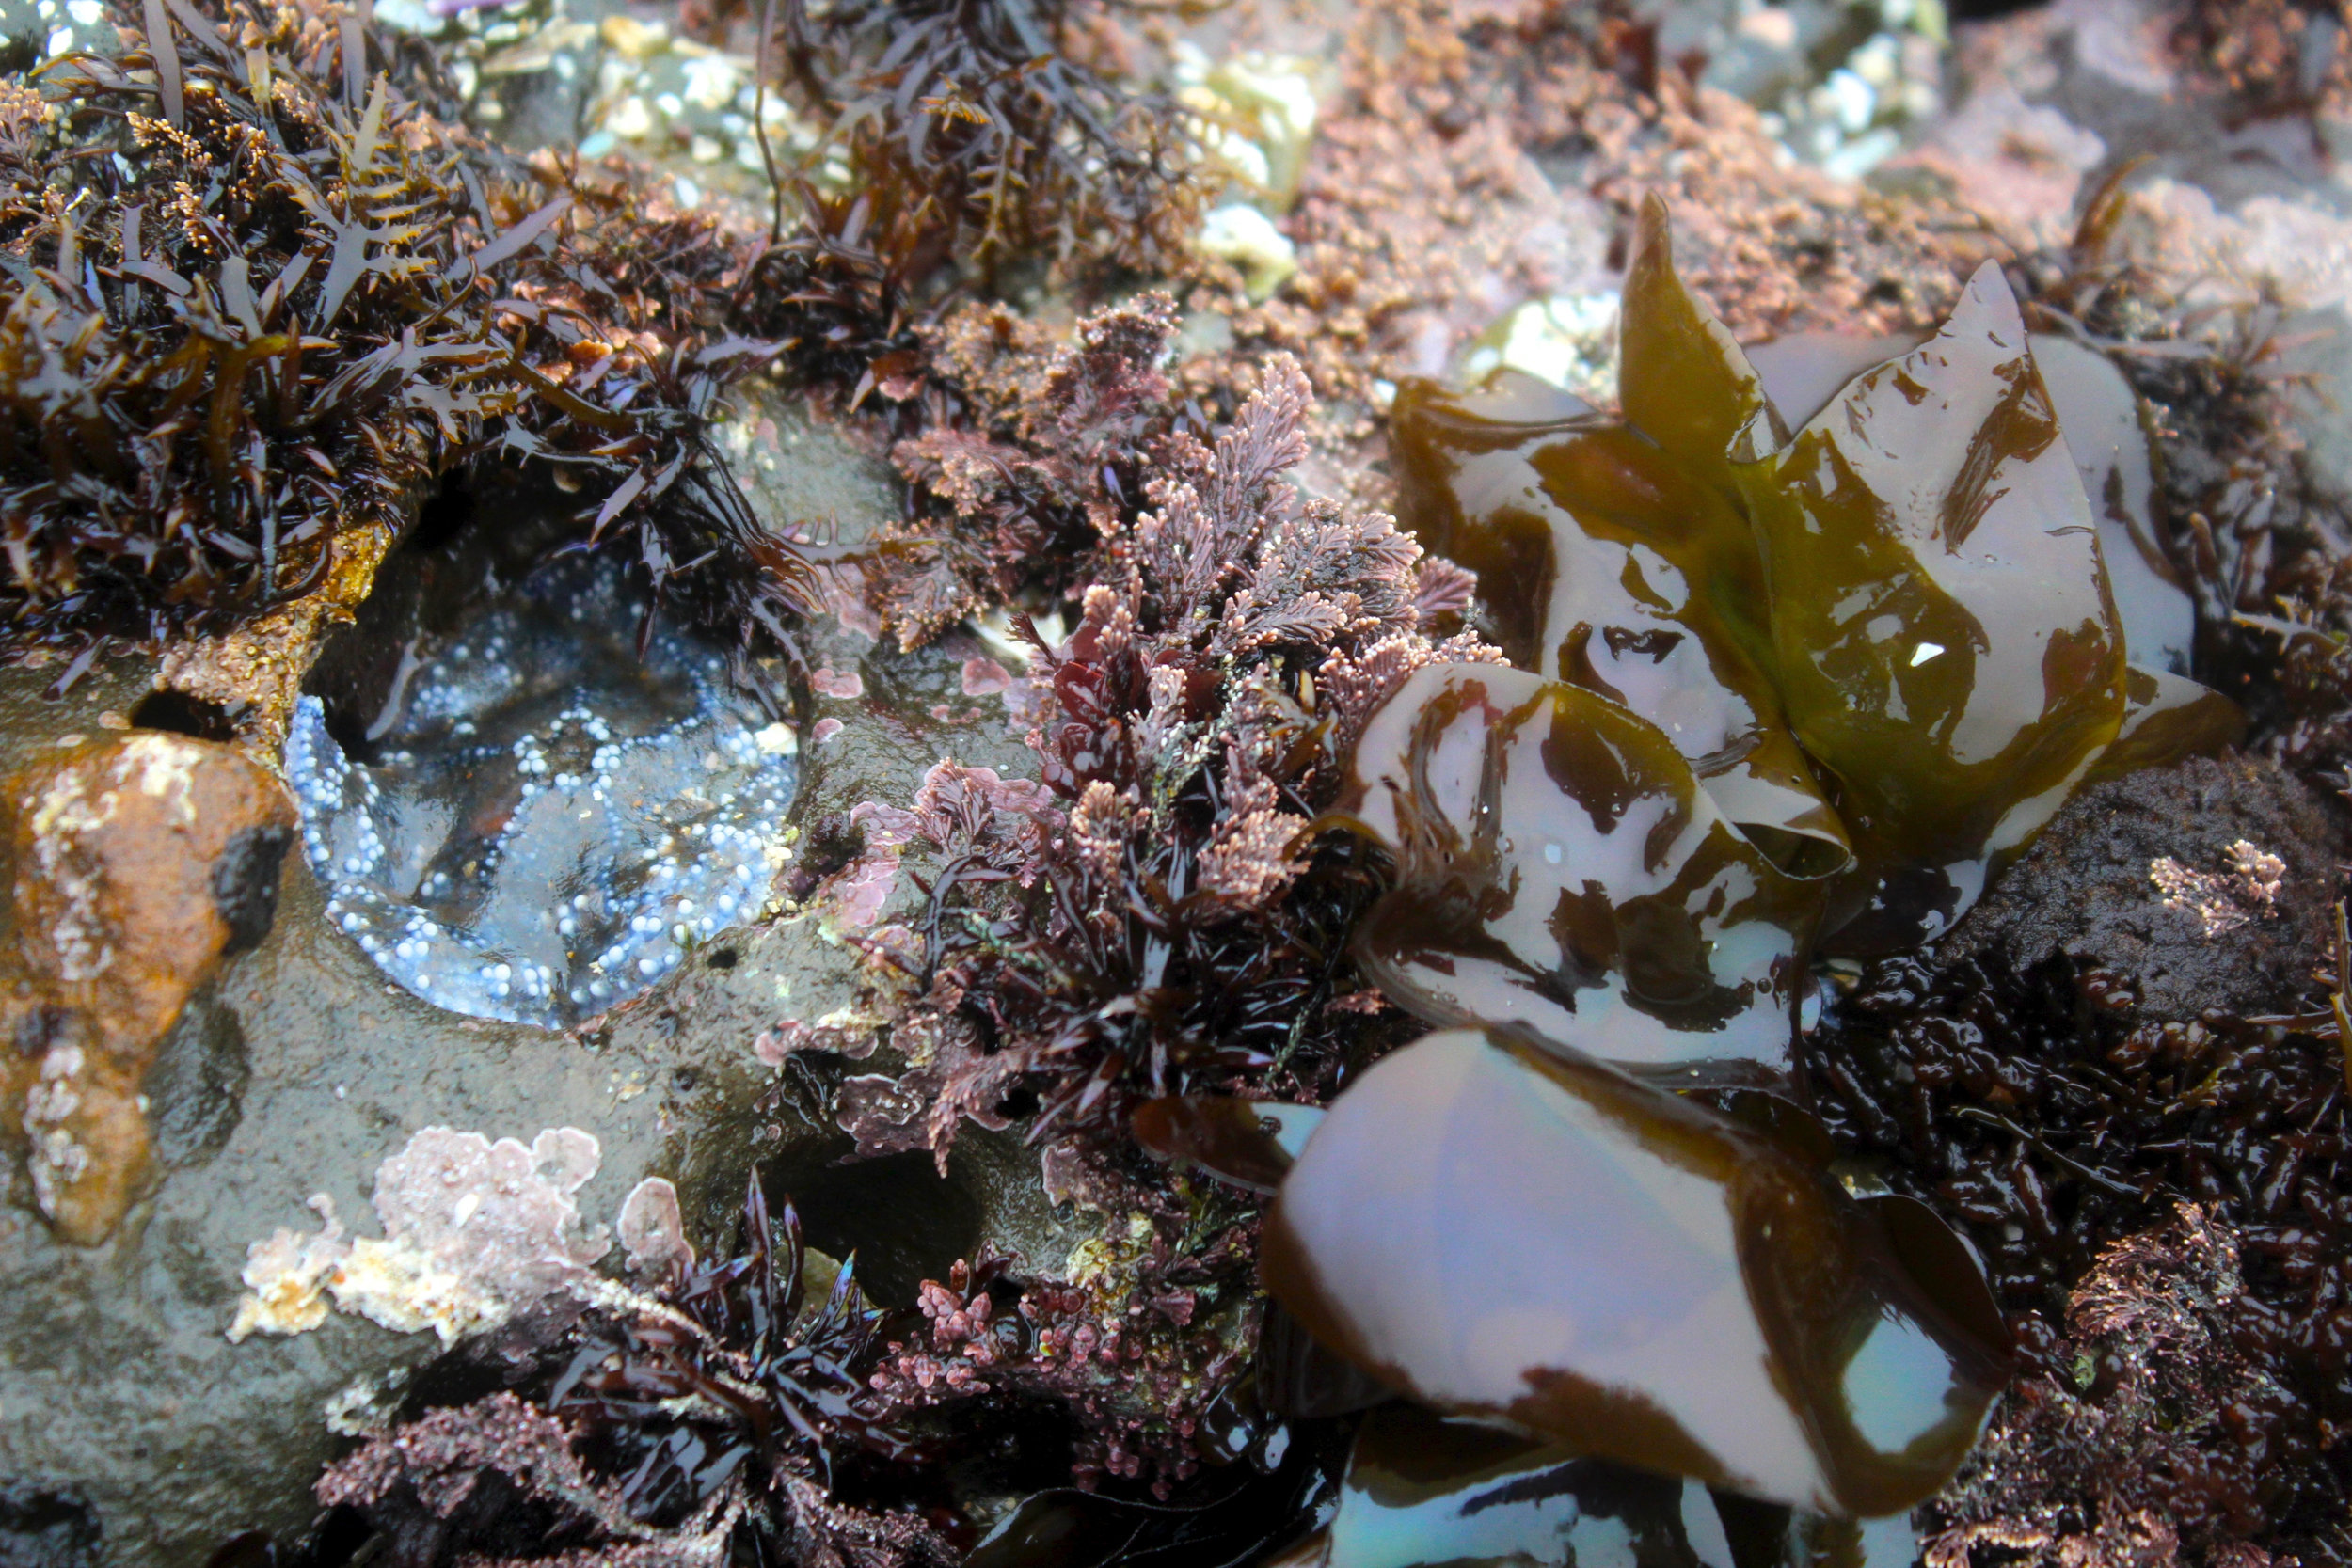 Can you find the sea star? Photo: A Bergamin.